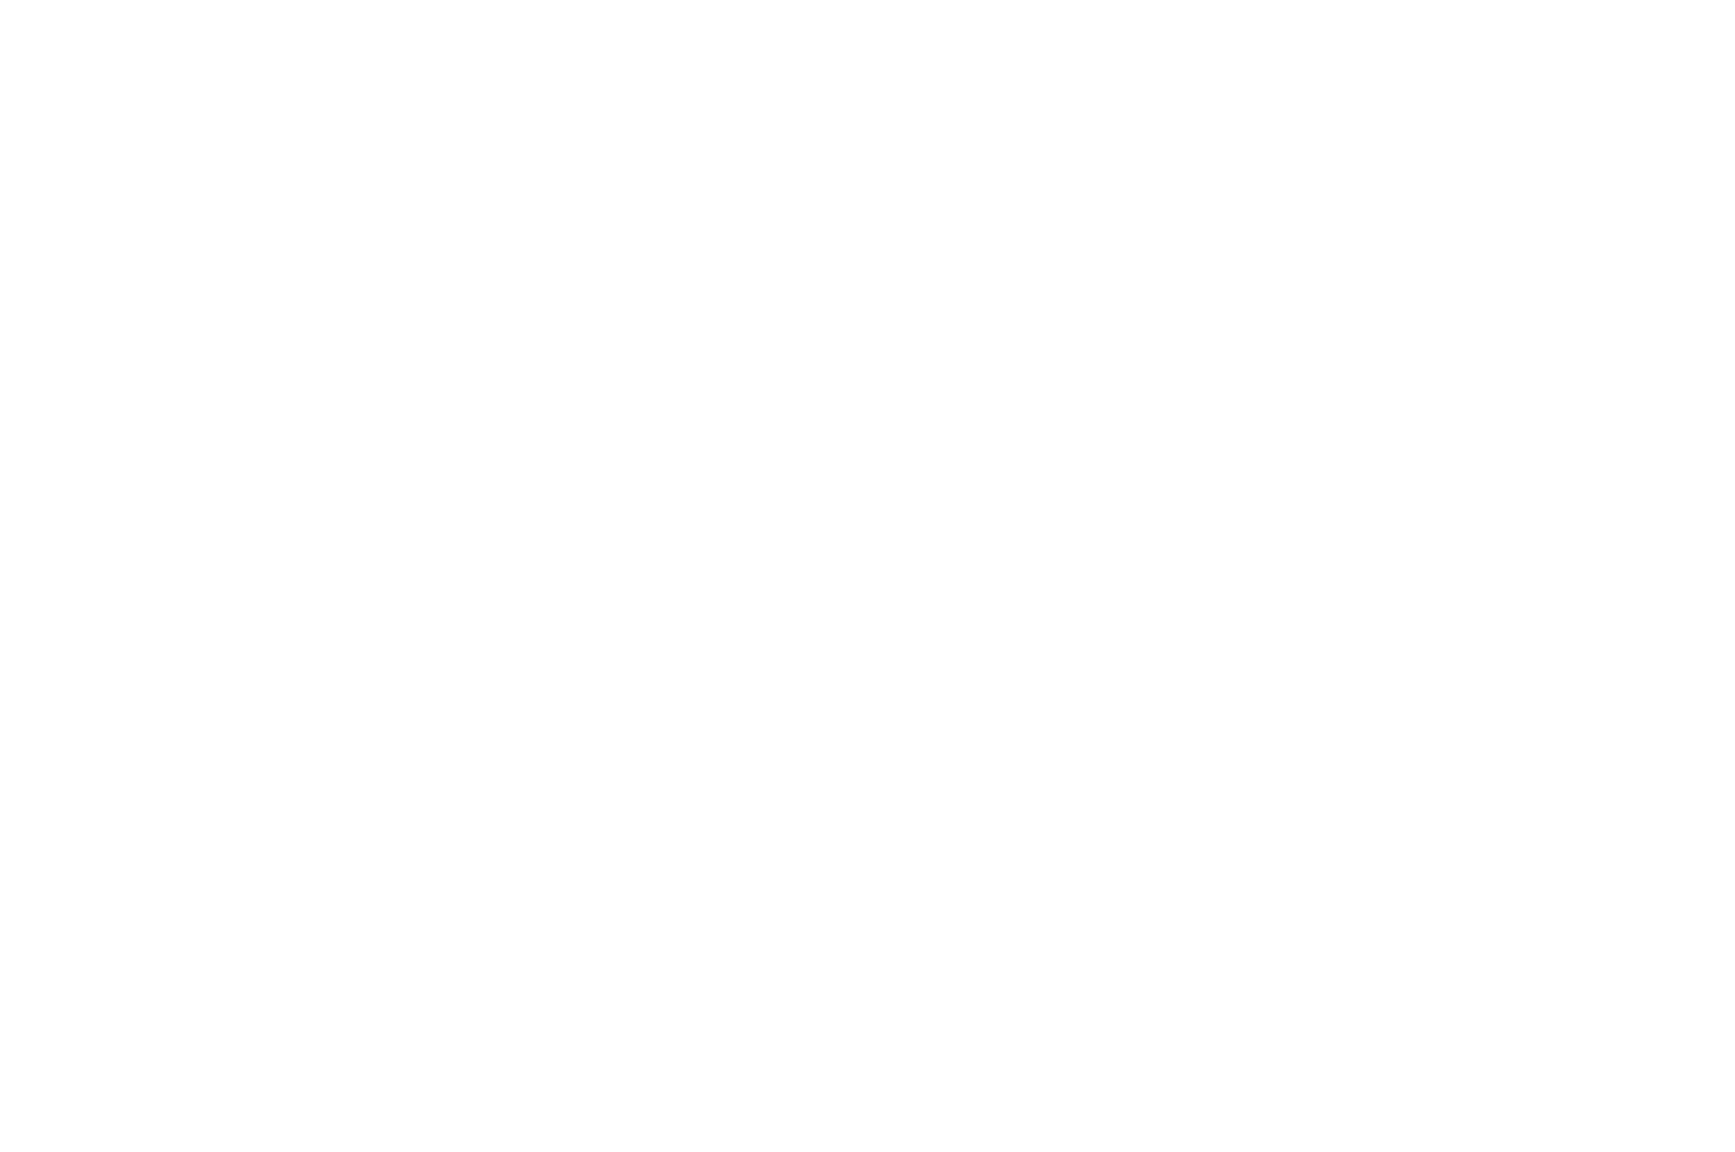 Cool Girls Official Selection- Canada Independent Film Festival - Cool Girls is Nominated for Best Web Series at the 2018 Canada Independent Film Festival in Montreal Qc, held in January 2018.https://www.canadafilmfest.com/